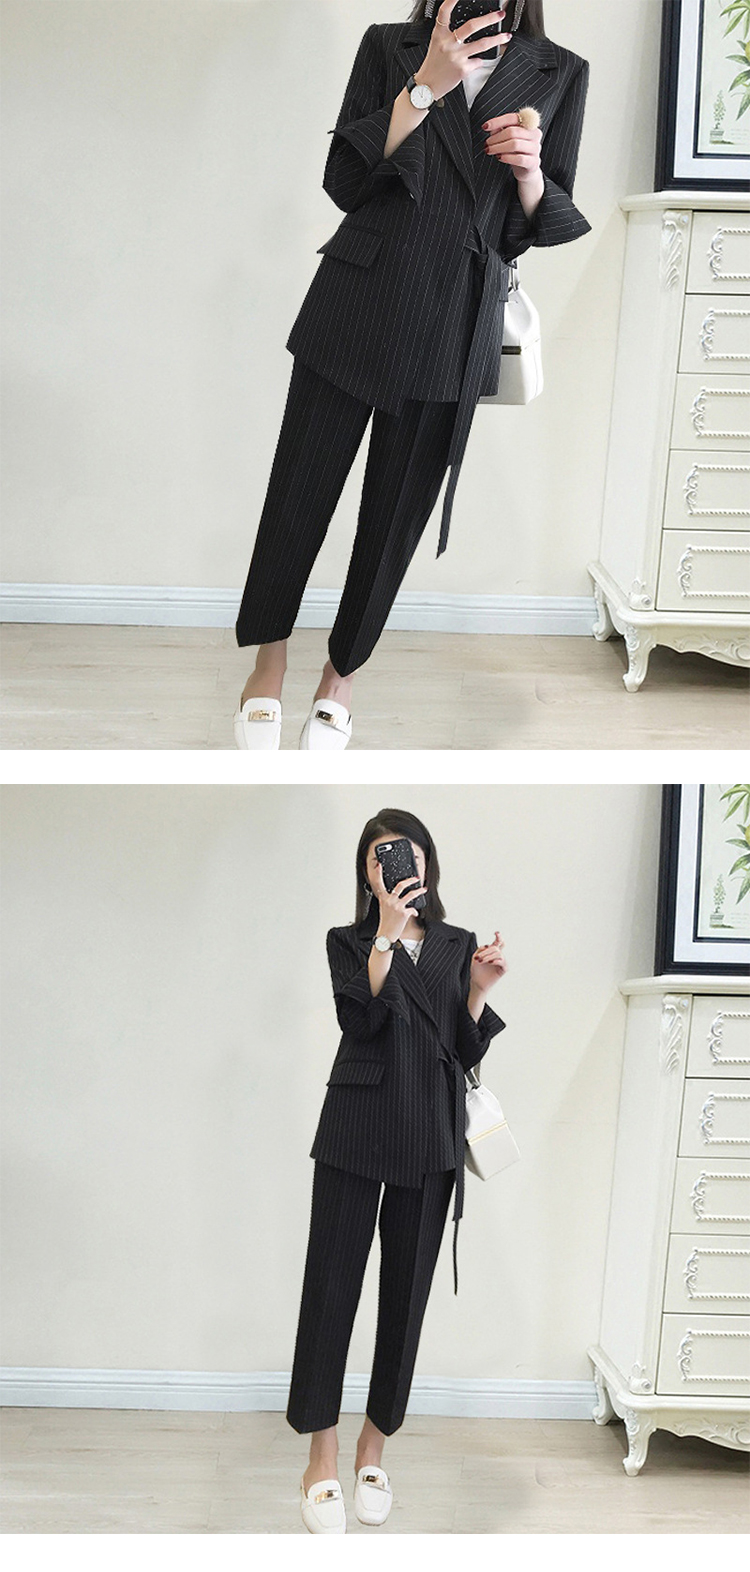 New arrival women plus big size pant suit professional temperament fashion warm suit elastic waist pant comfortable pant suits 4